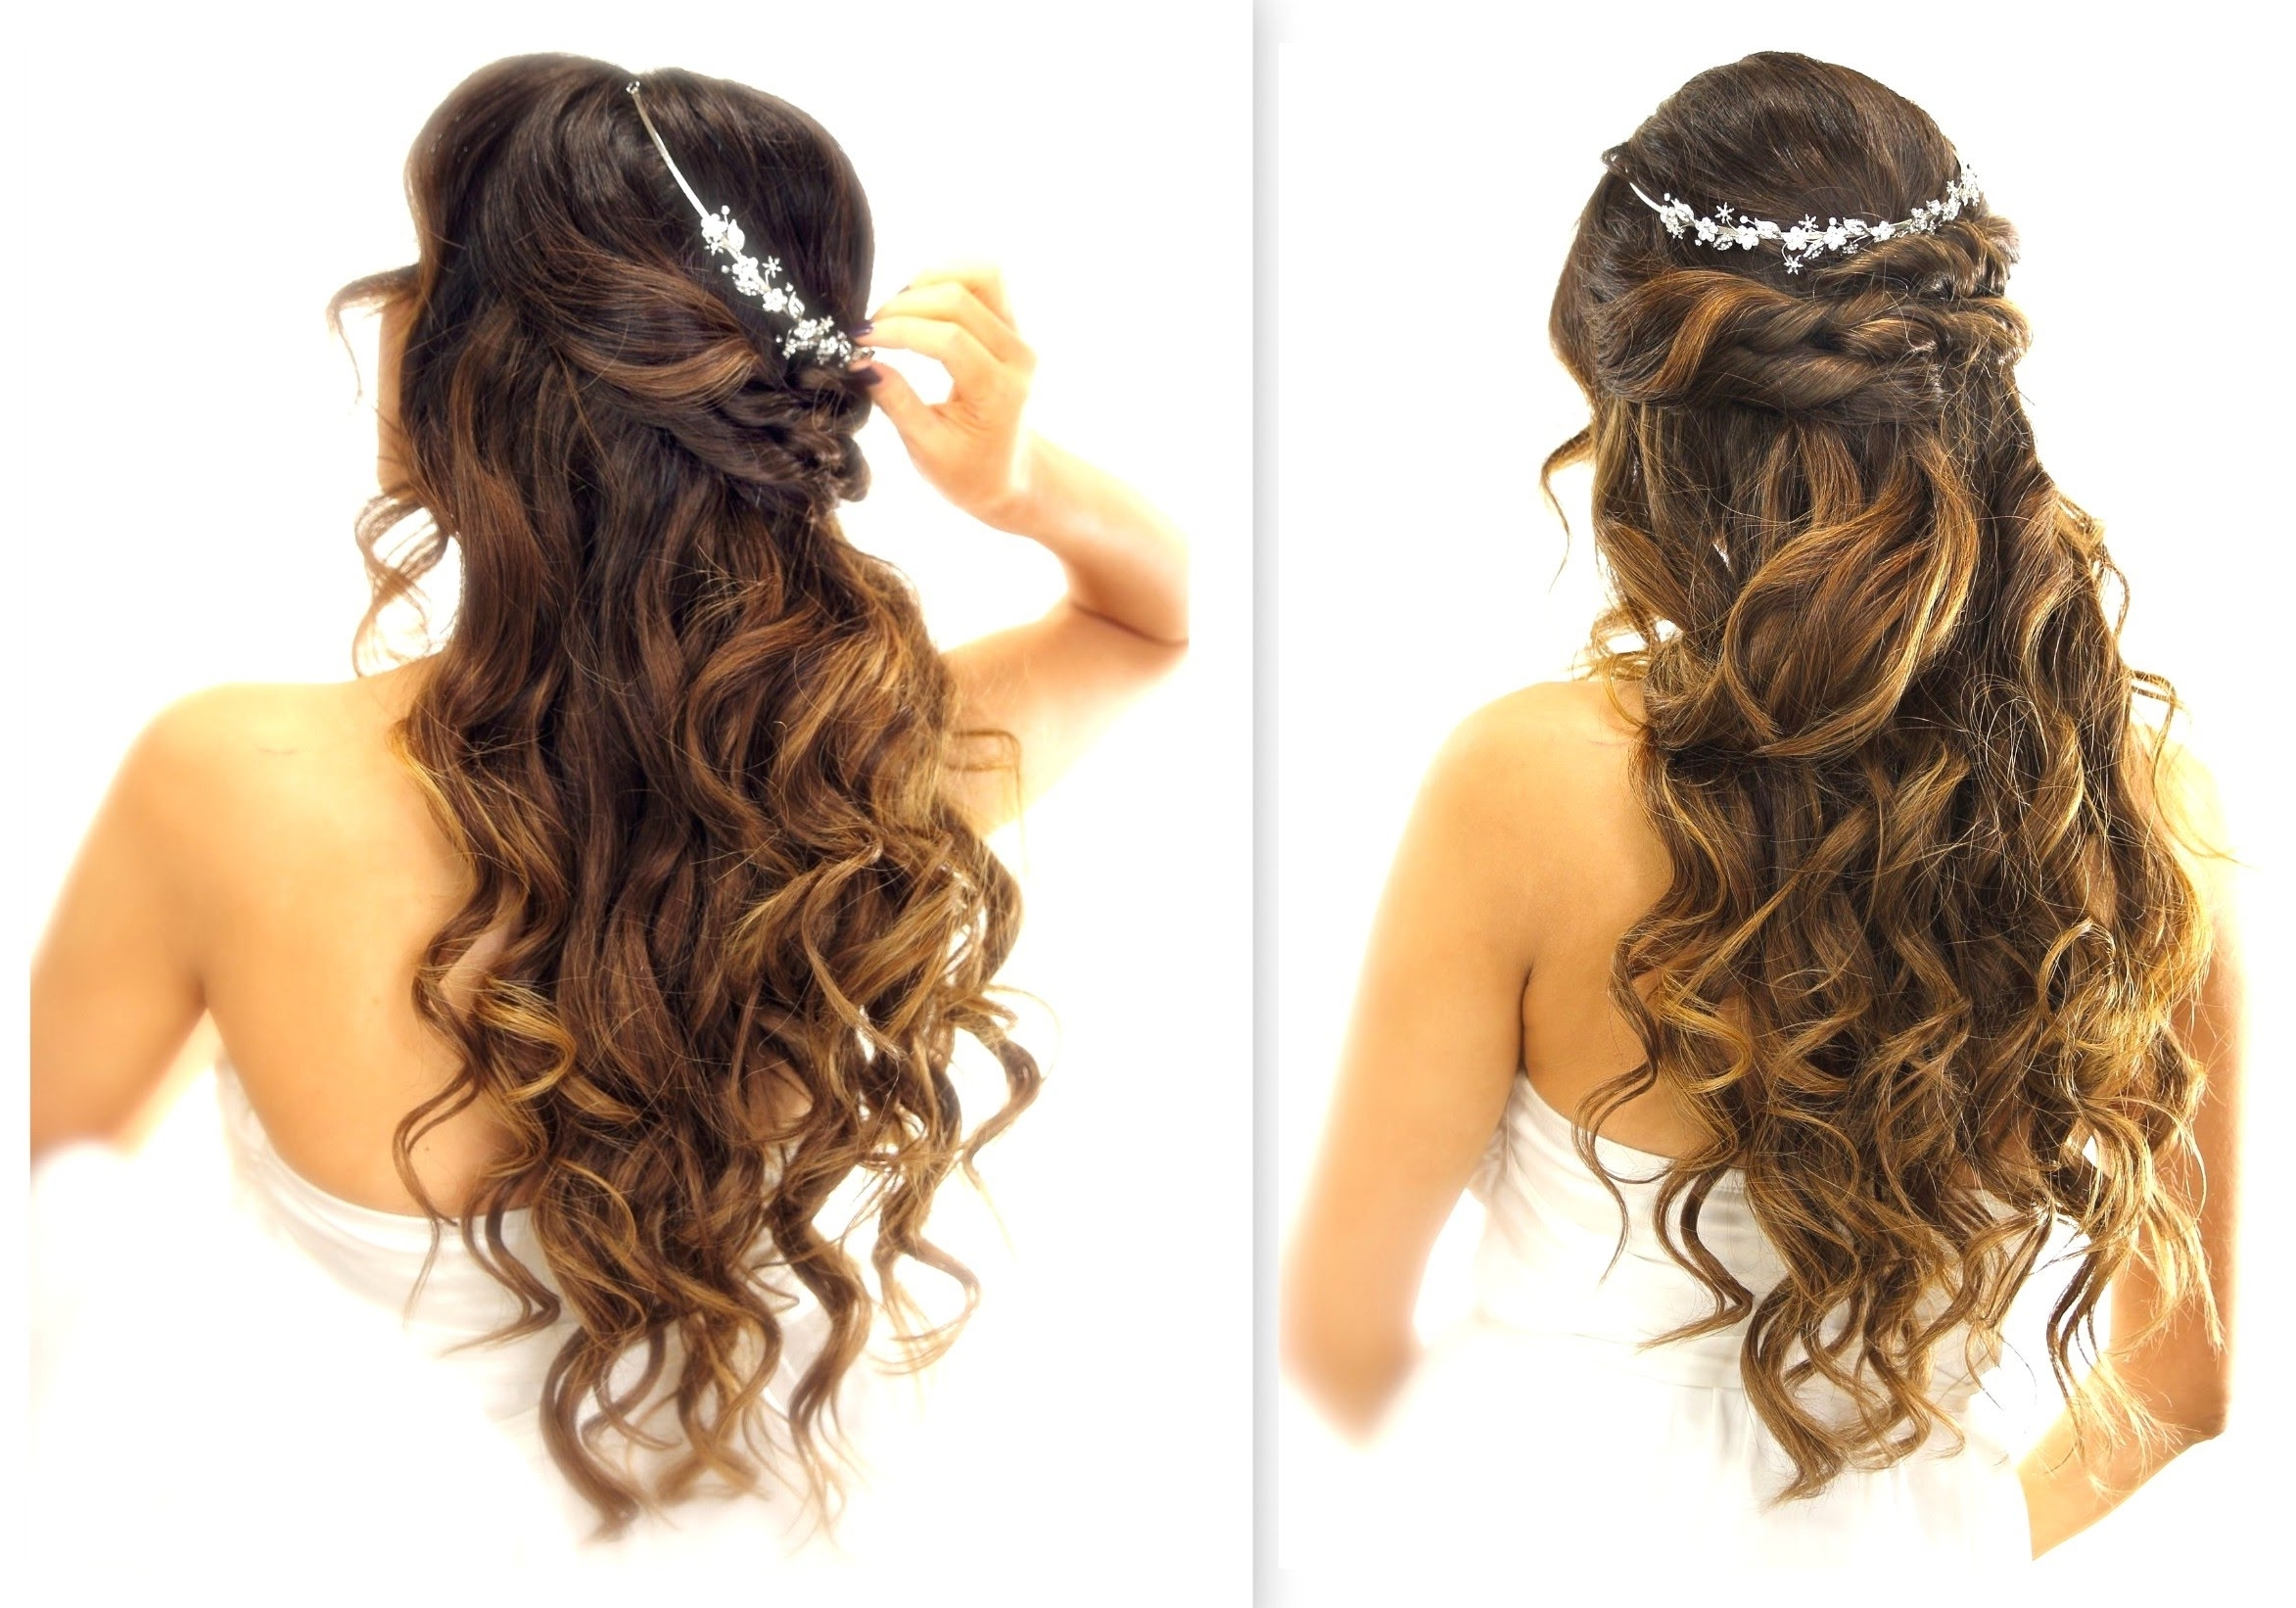 Bridal Hairstyles (View 7 of 15)